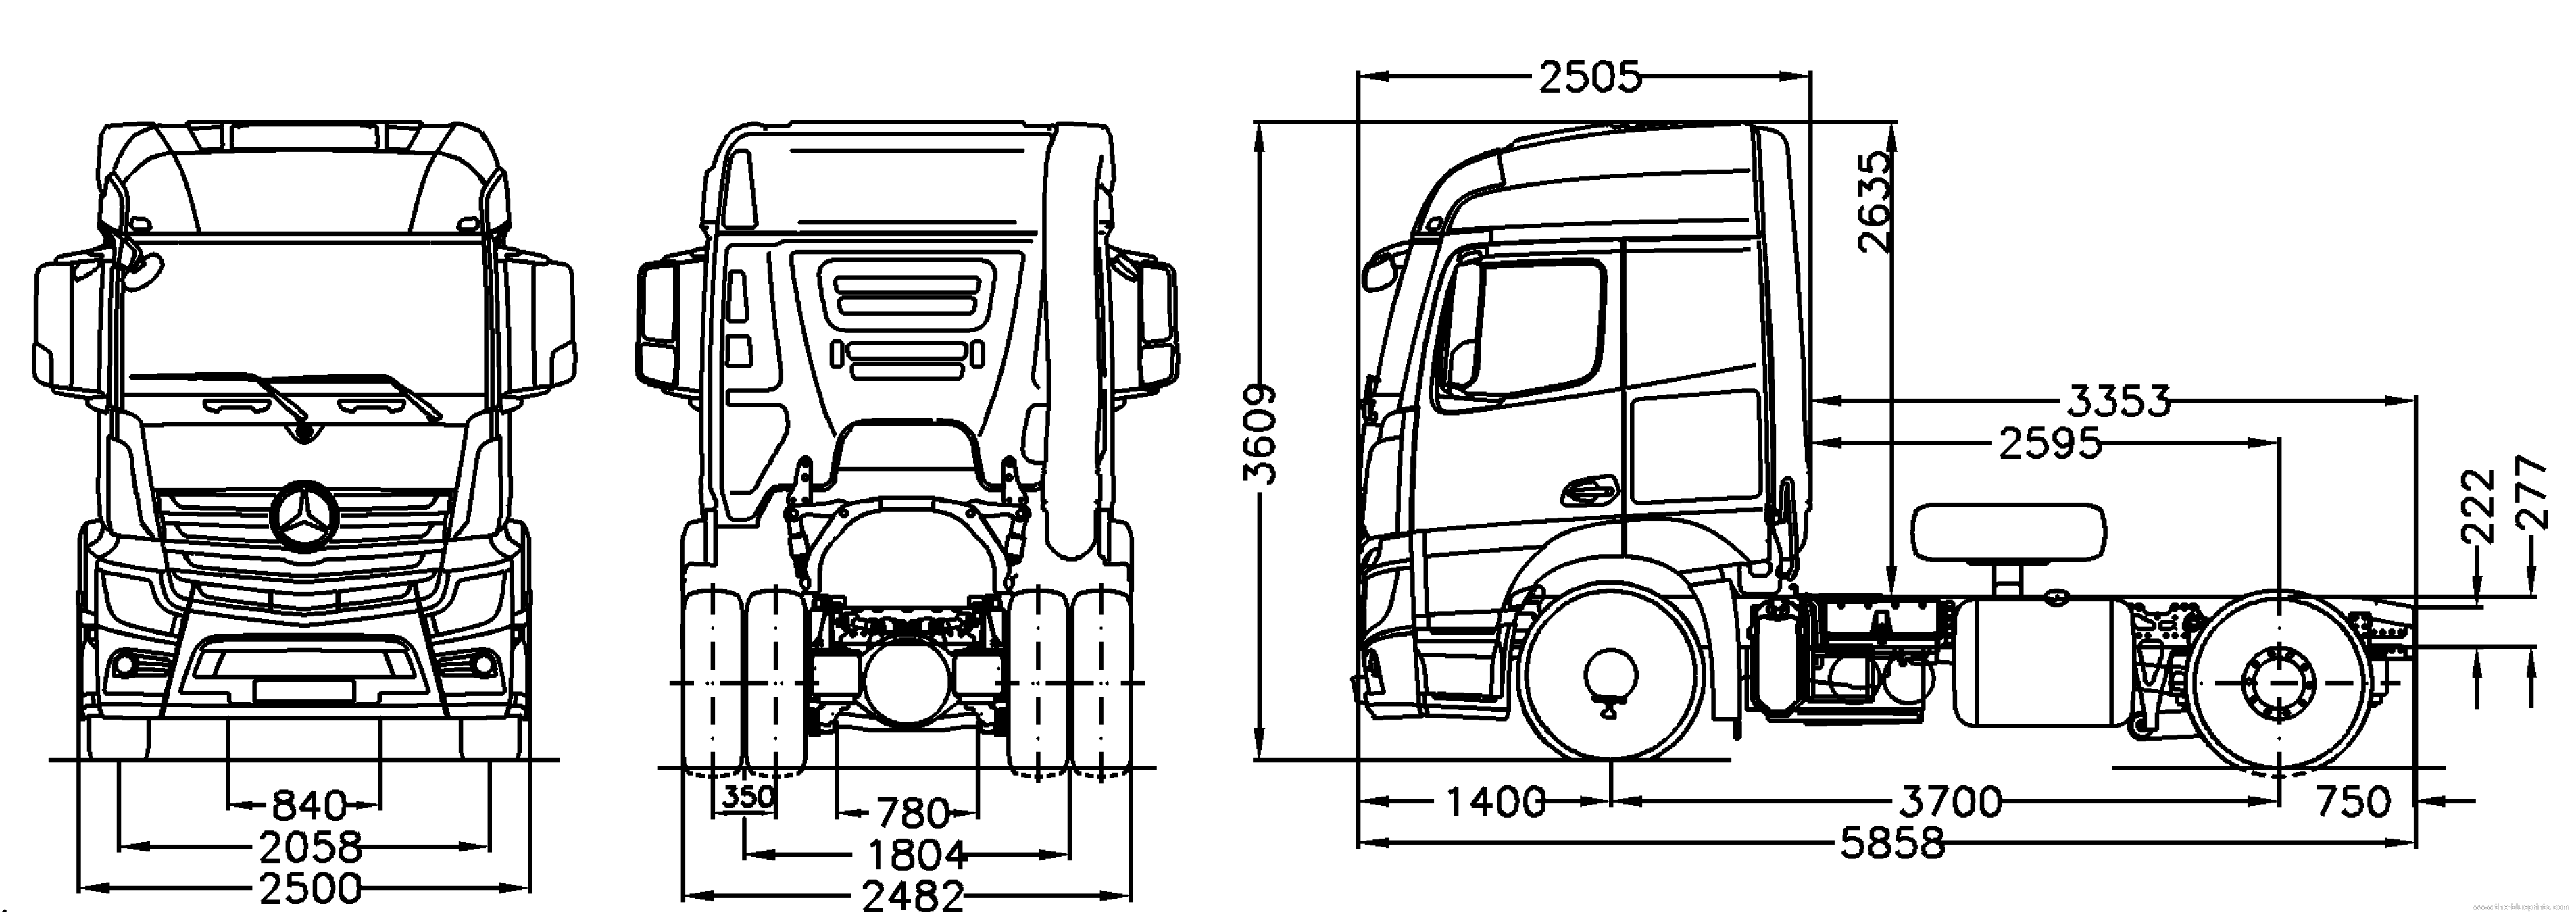 Dana 30 Late furthermore Kenworth T2000 Wiring Electrical Schematics Manual Pdf furthermore 1164112 Help With Sensors 7 3l also 4cuyg Blower Dont Work Sleeper 1998 379 further International 365 444 466 530 Service Manuals. on diagram of 2000 international truck